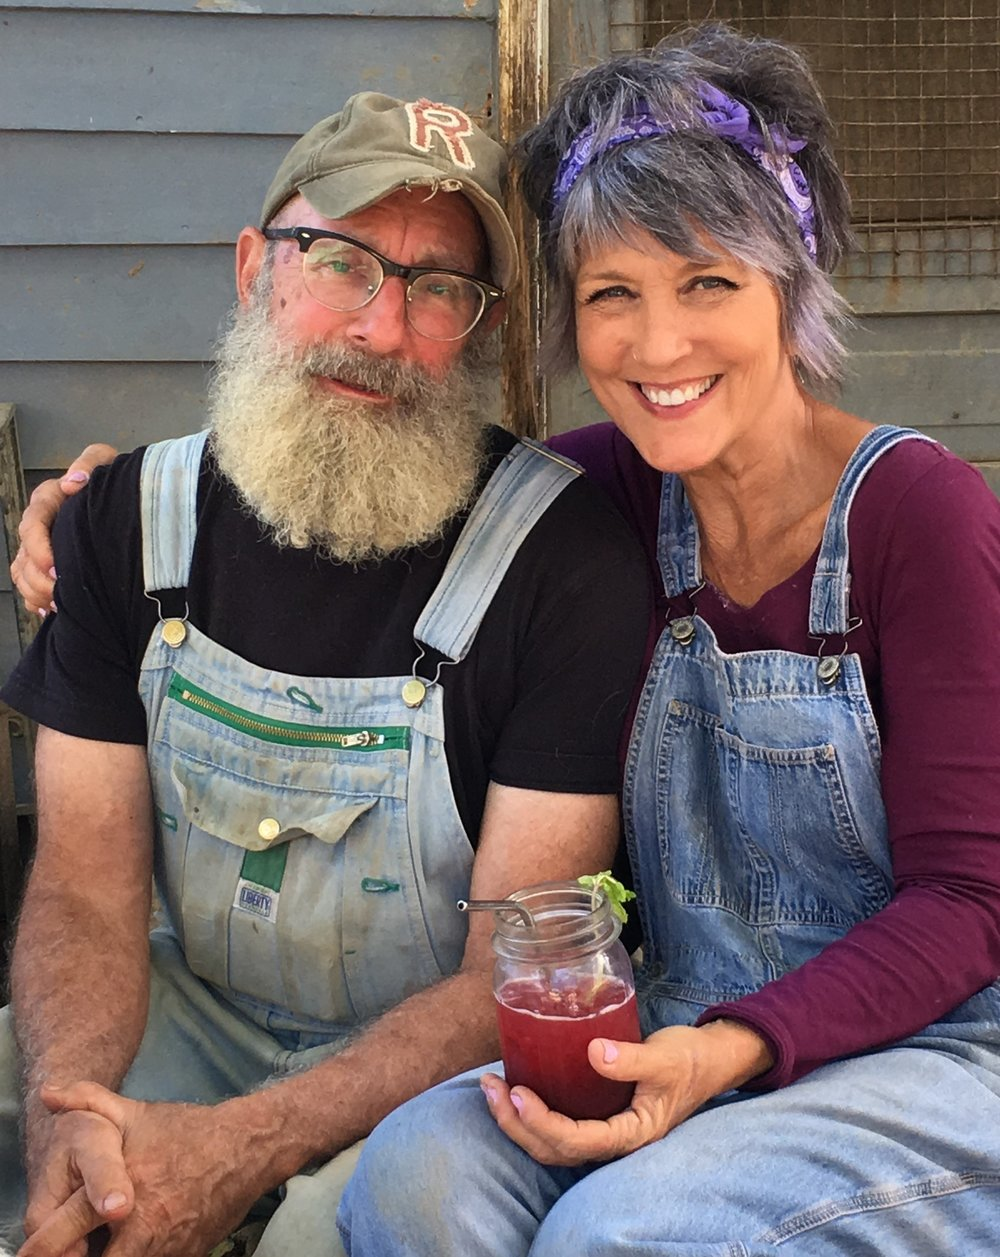 the farmers - That's us!  Pat and Paul Schertz.  Rosie Belle Farm was fueled by a desire for a life of simplicity and balance.  We work harder than many half our age but we wouldn't have it any other way.  Growing good food for our community offers incredible satisfaction as well as a sense of purpose and for that we are ever grateful.  Farm Fresh Meat, Dairy, Baked Goods, Produce and so much more....delivered from our Farm straight to your Nashville area Front Door!Sounds good?  It is!  Text The Farmer at 813-300-3306 and learn how you can be part of our Farmily.